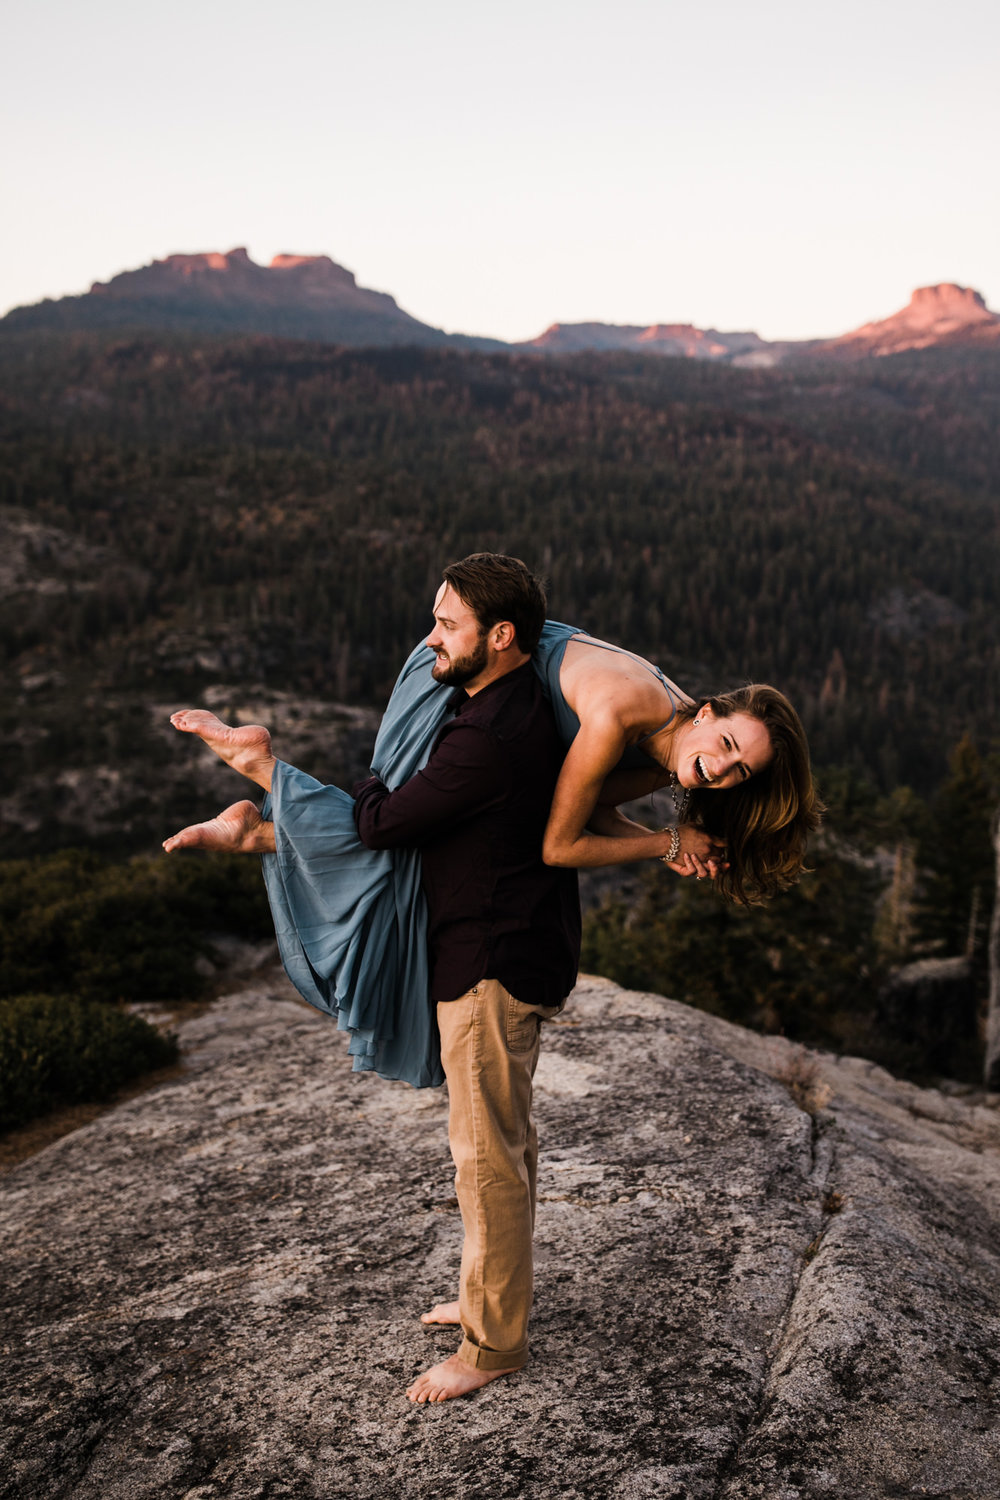 california mountains adventure engagement session | destination engagement photo inspiration | utah adventure elopement photographers | the hearnes adventure photography | www.thehearnes.com